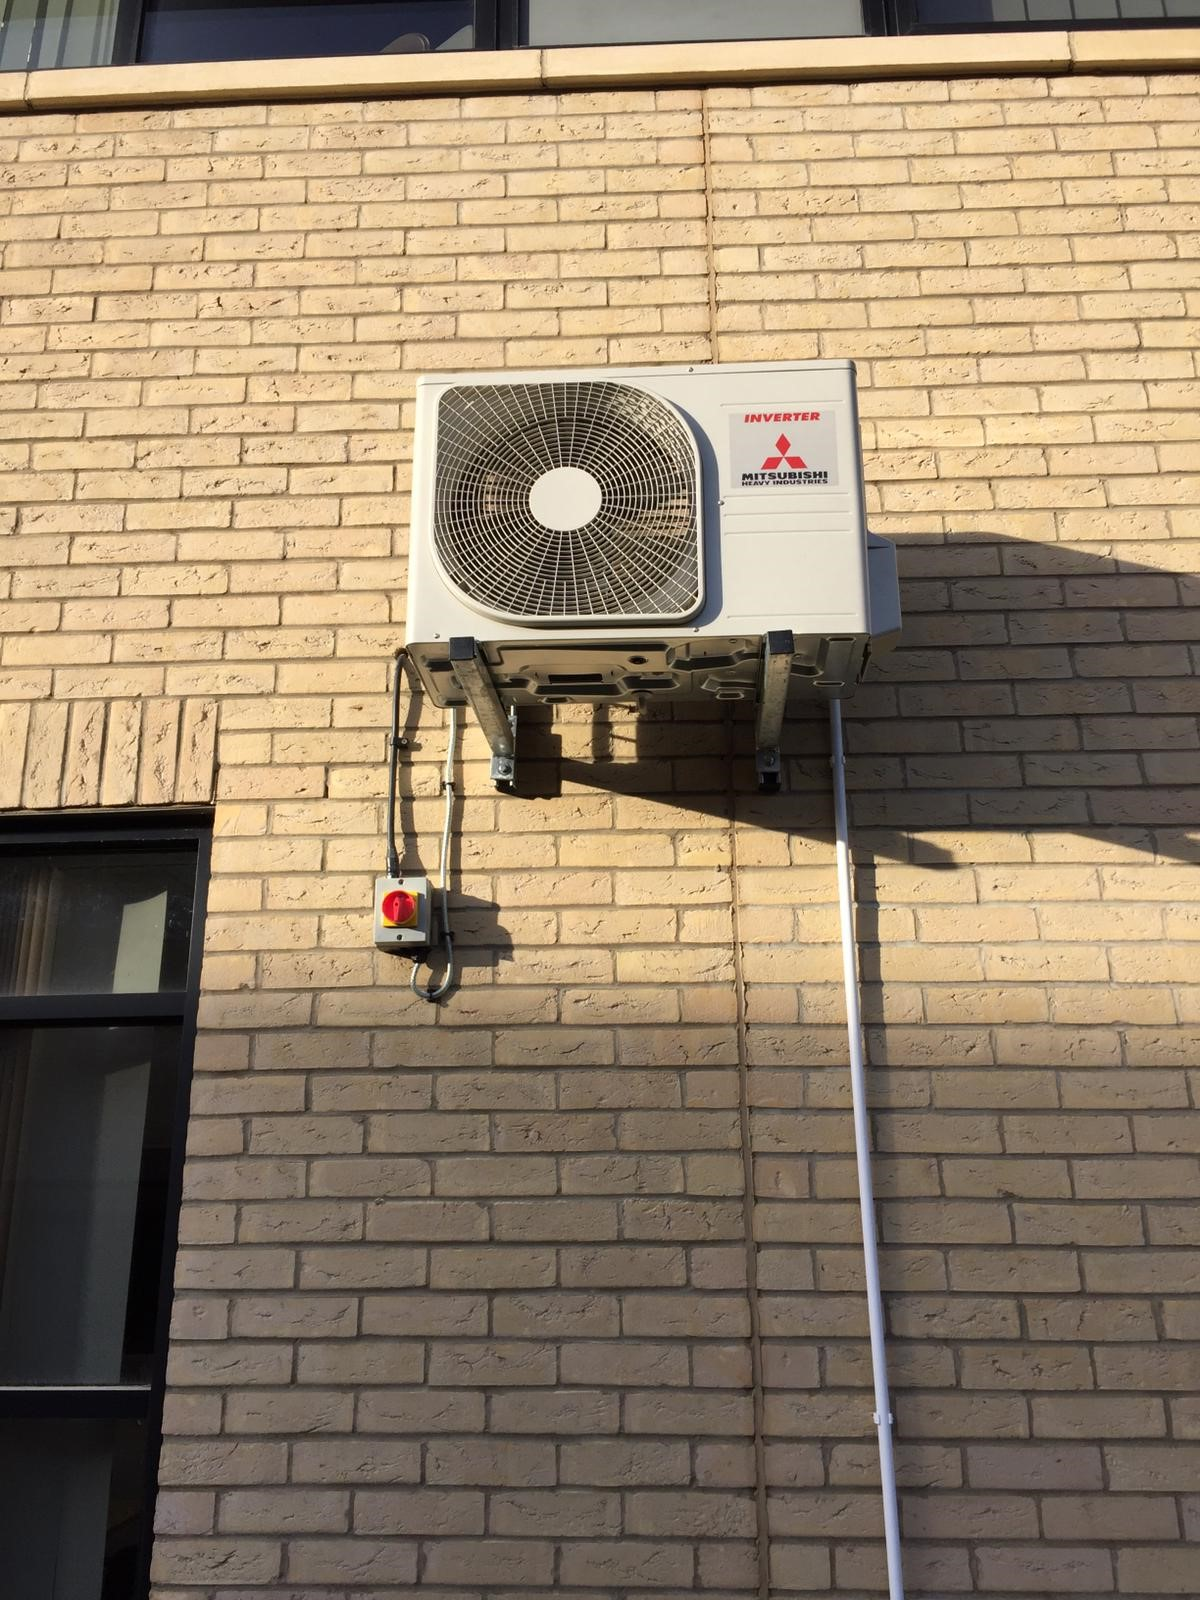 Air Conditioning outdoor condenser- comms room 19-1-19